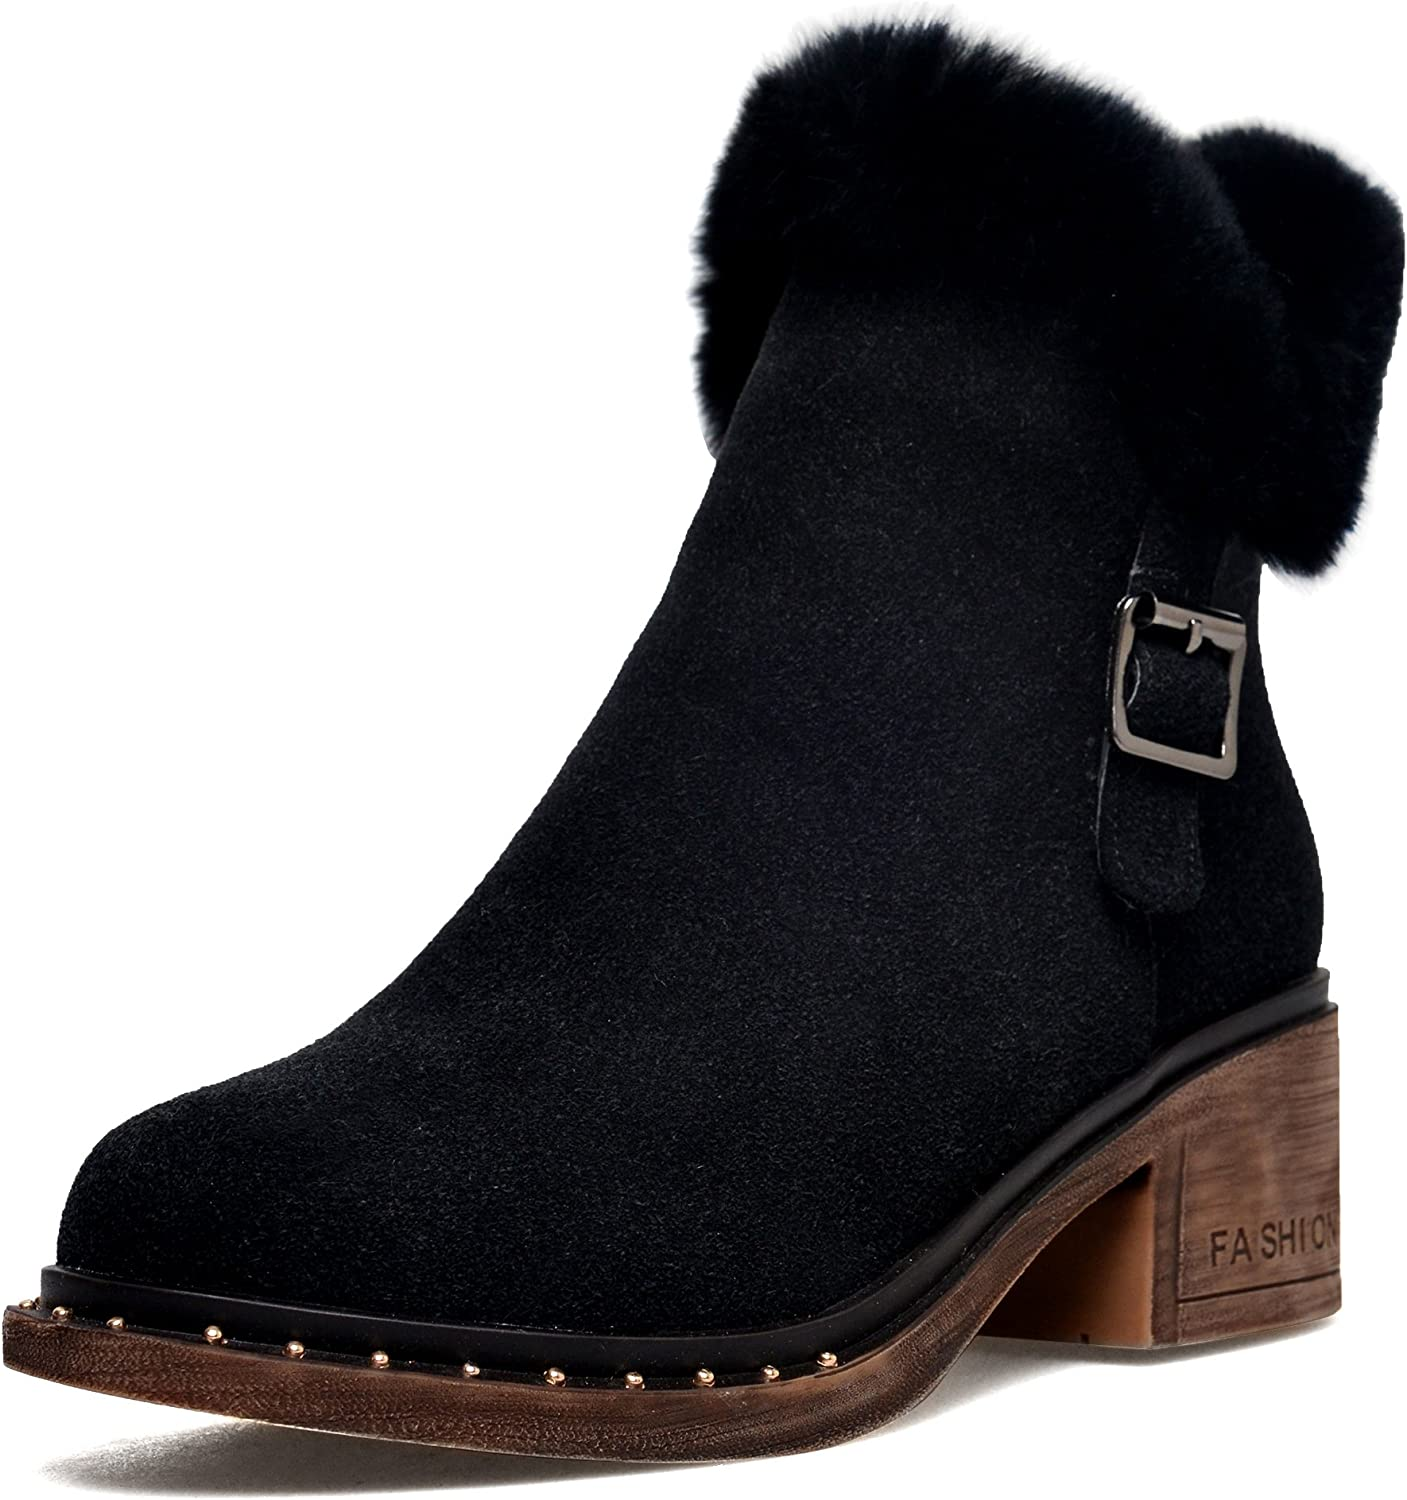 DoraTasia Women's Buckle Leather Nubuck Faux Fur Pointed Toe Chunky Heel Ankle Boots